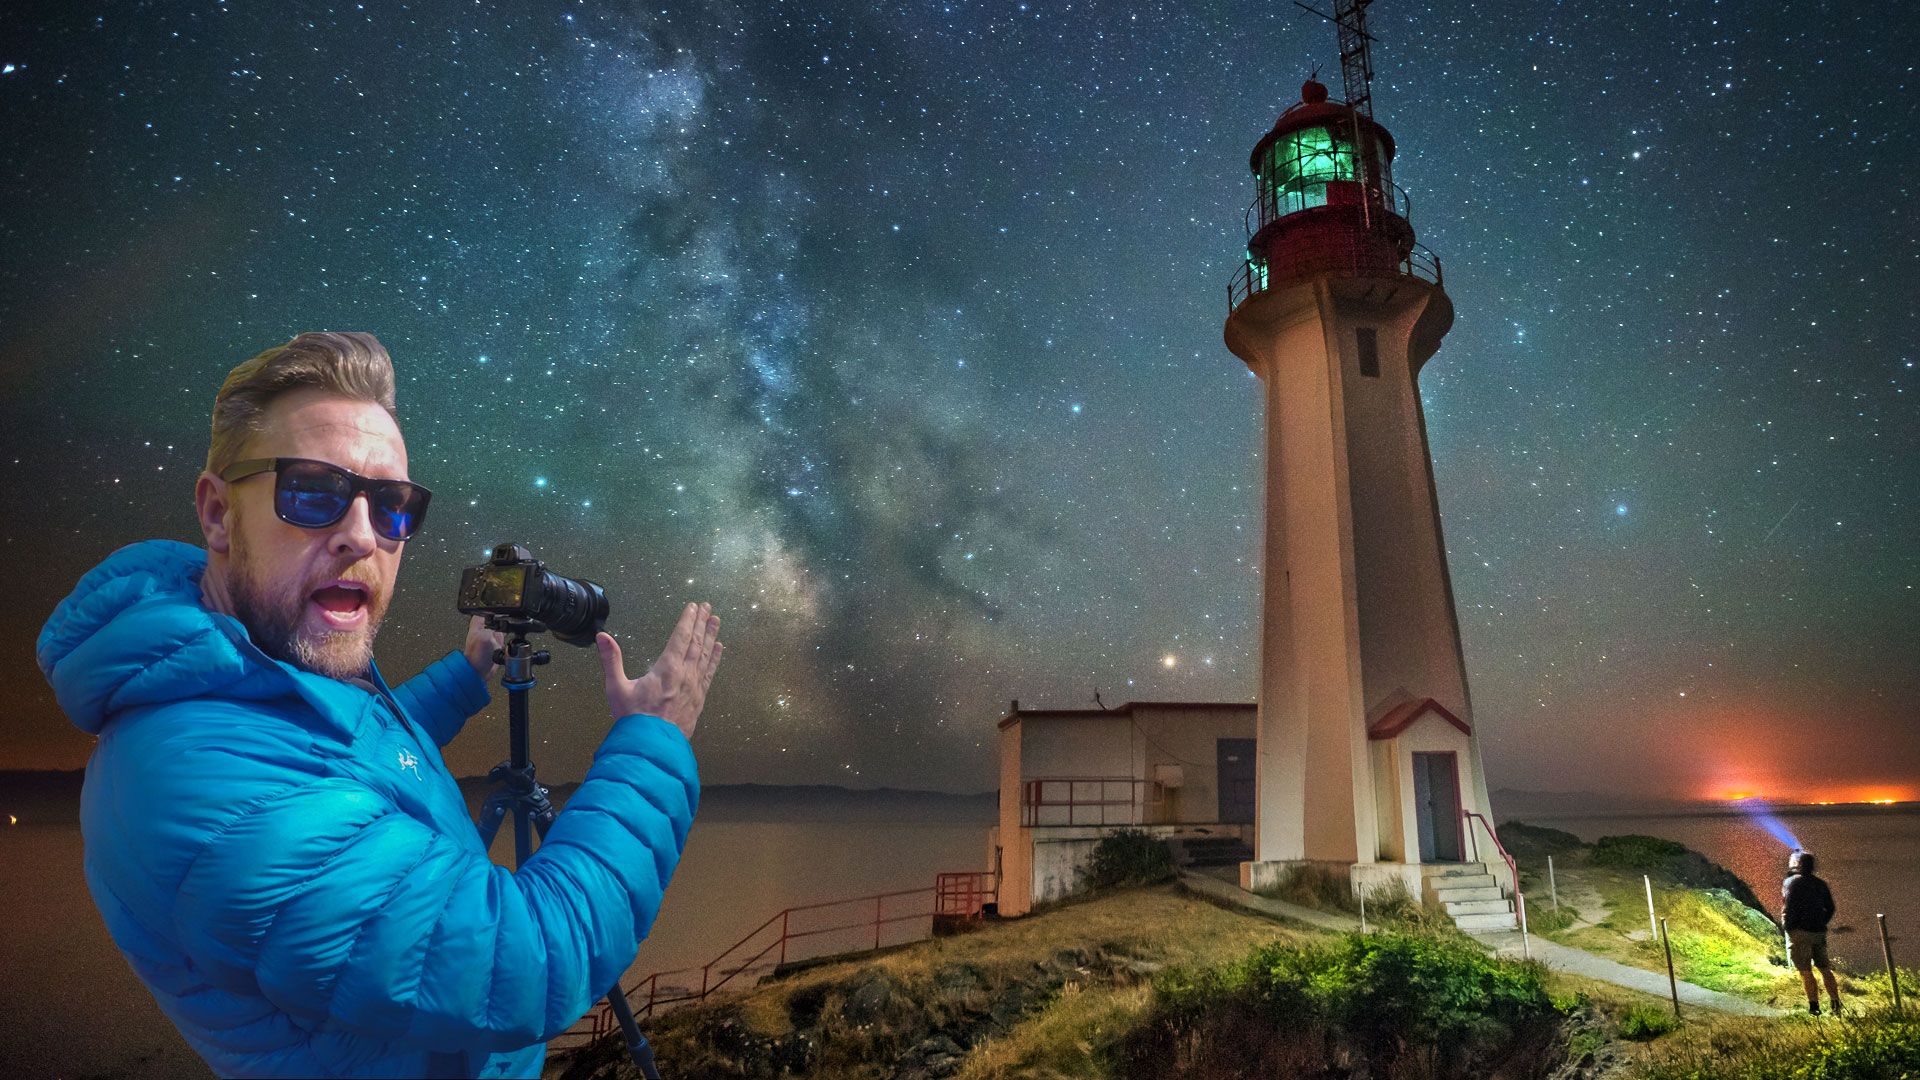 Vancouver Island Milky Way Photography Tutorial Workshop